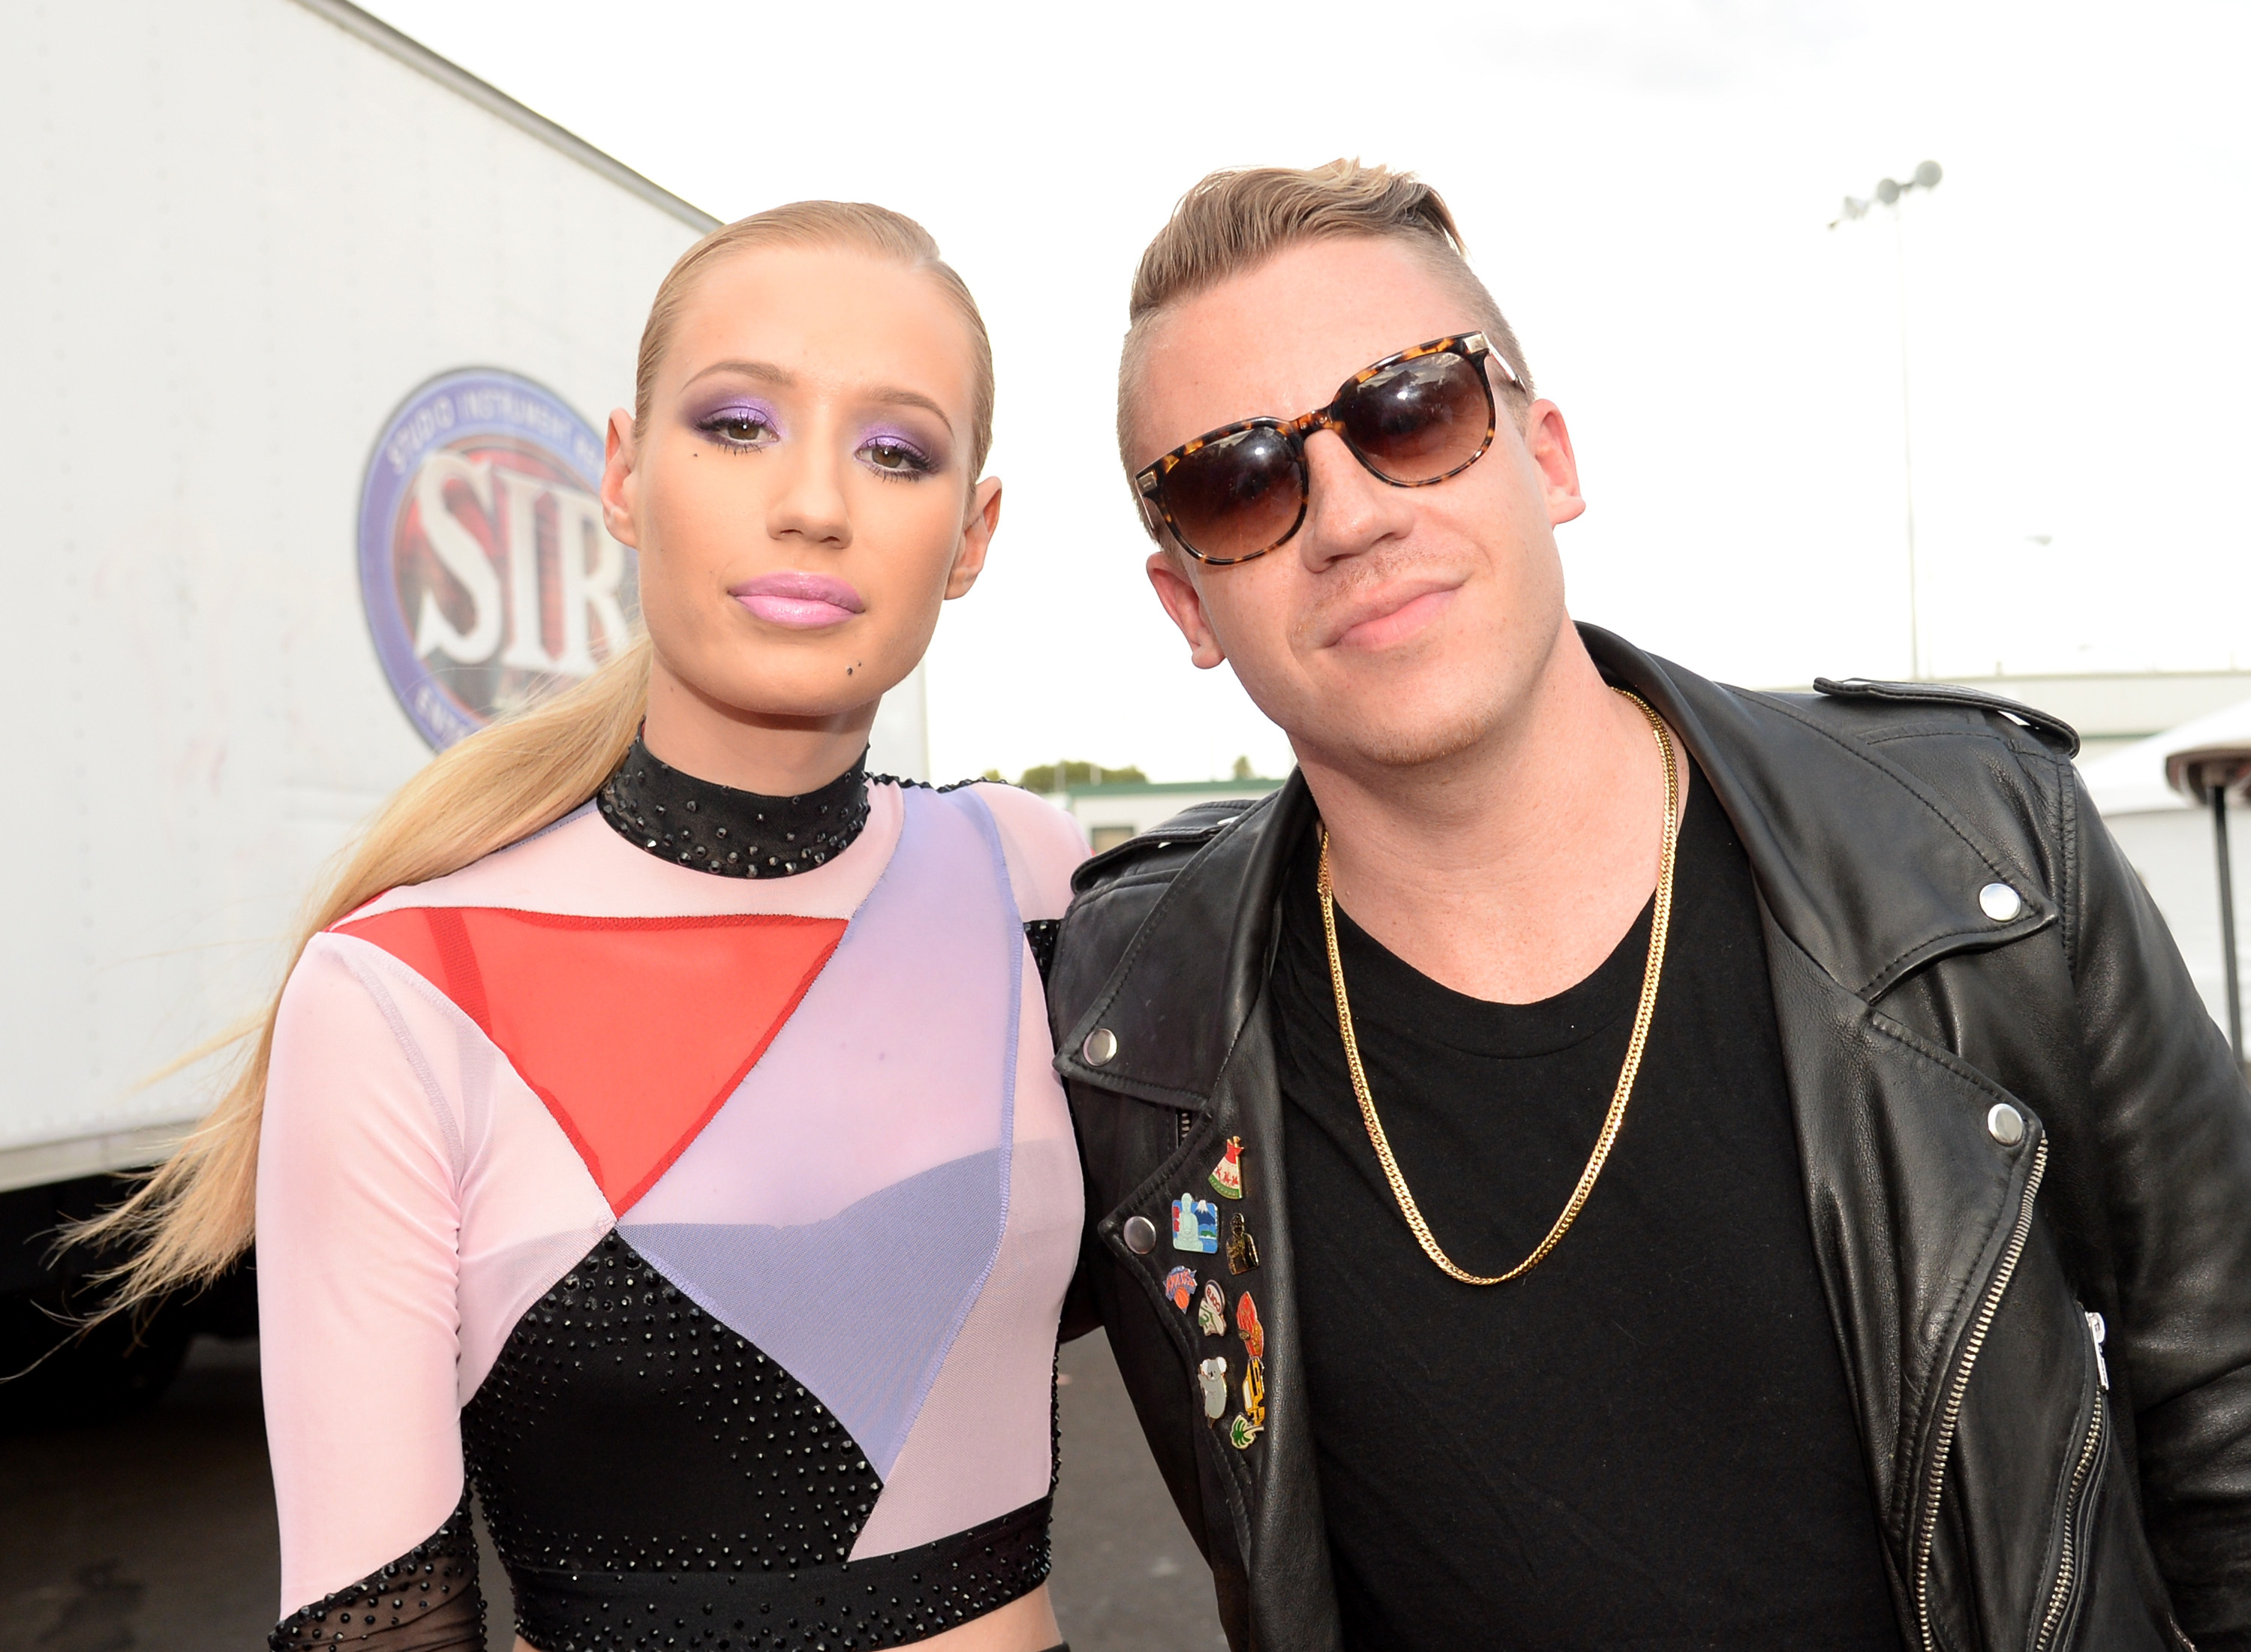 Rappers Iggy Azalea (L) and Macklemore attend the 2014 iHeartRadio Music Festival Village on September 20, 2014 in Las Vegas, Nevada.